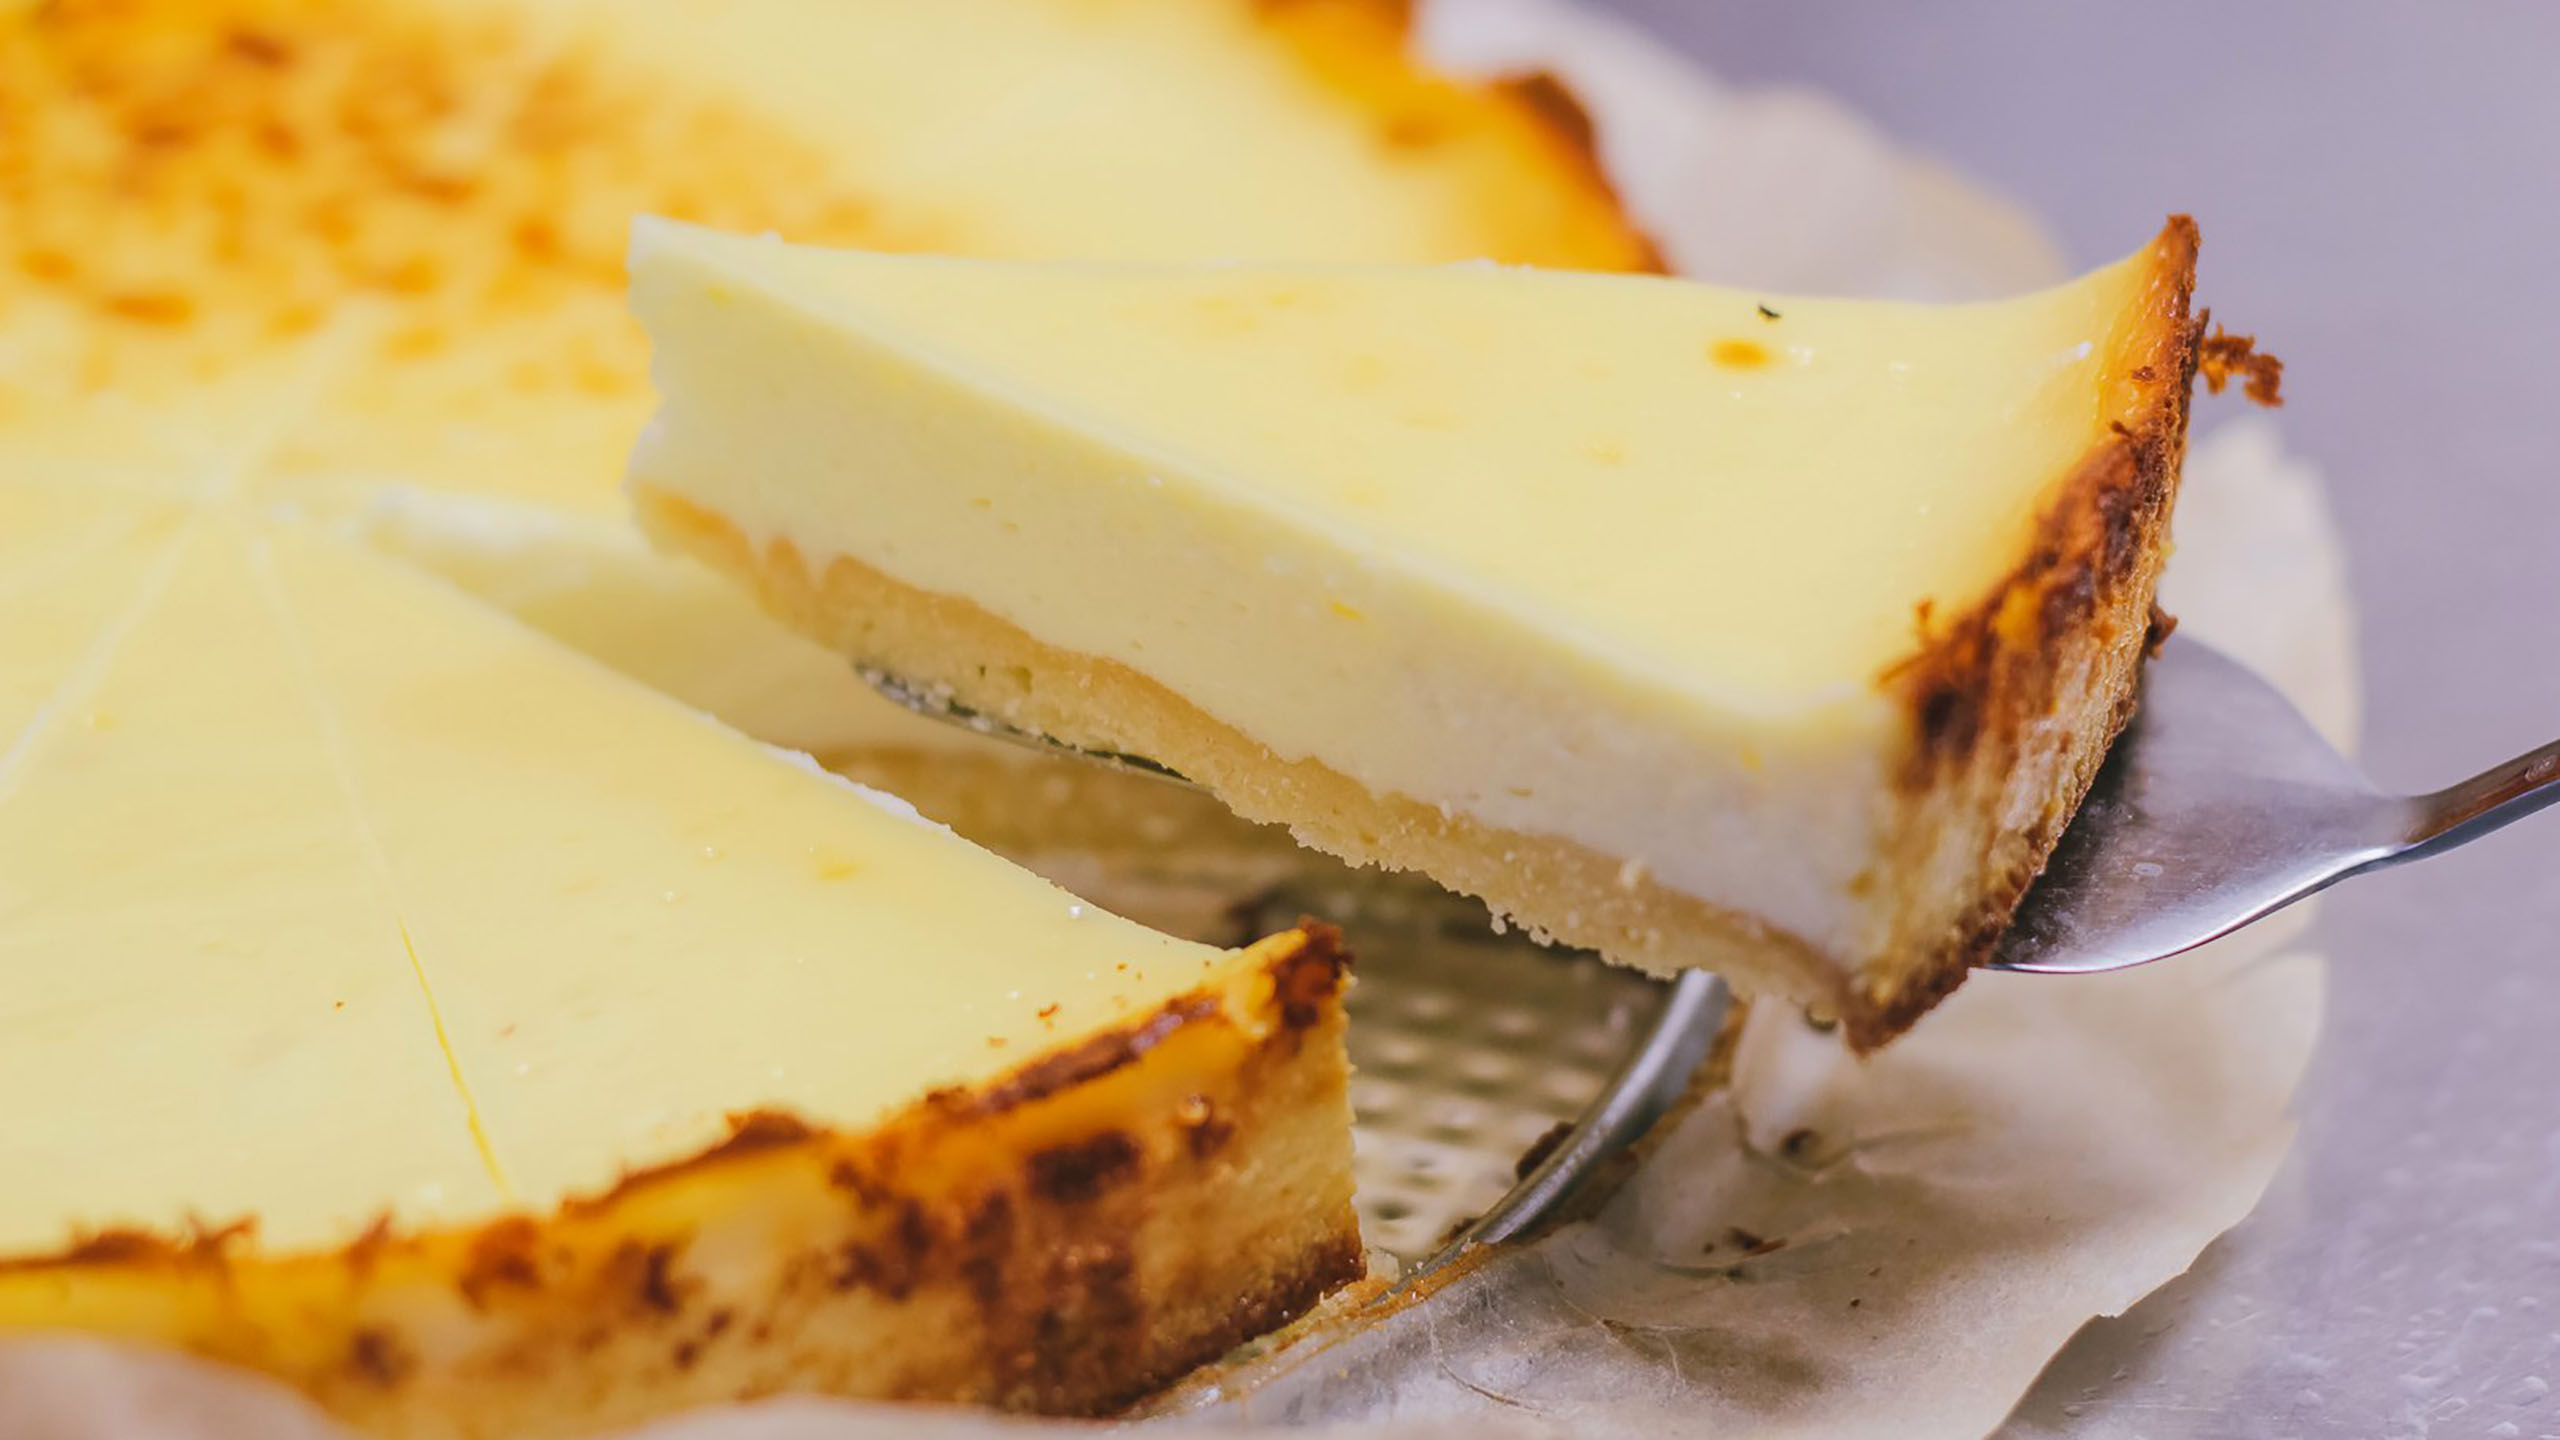 cheesecake, pay de queso